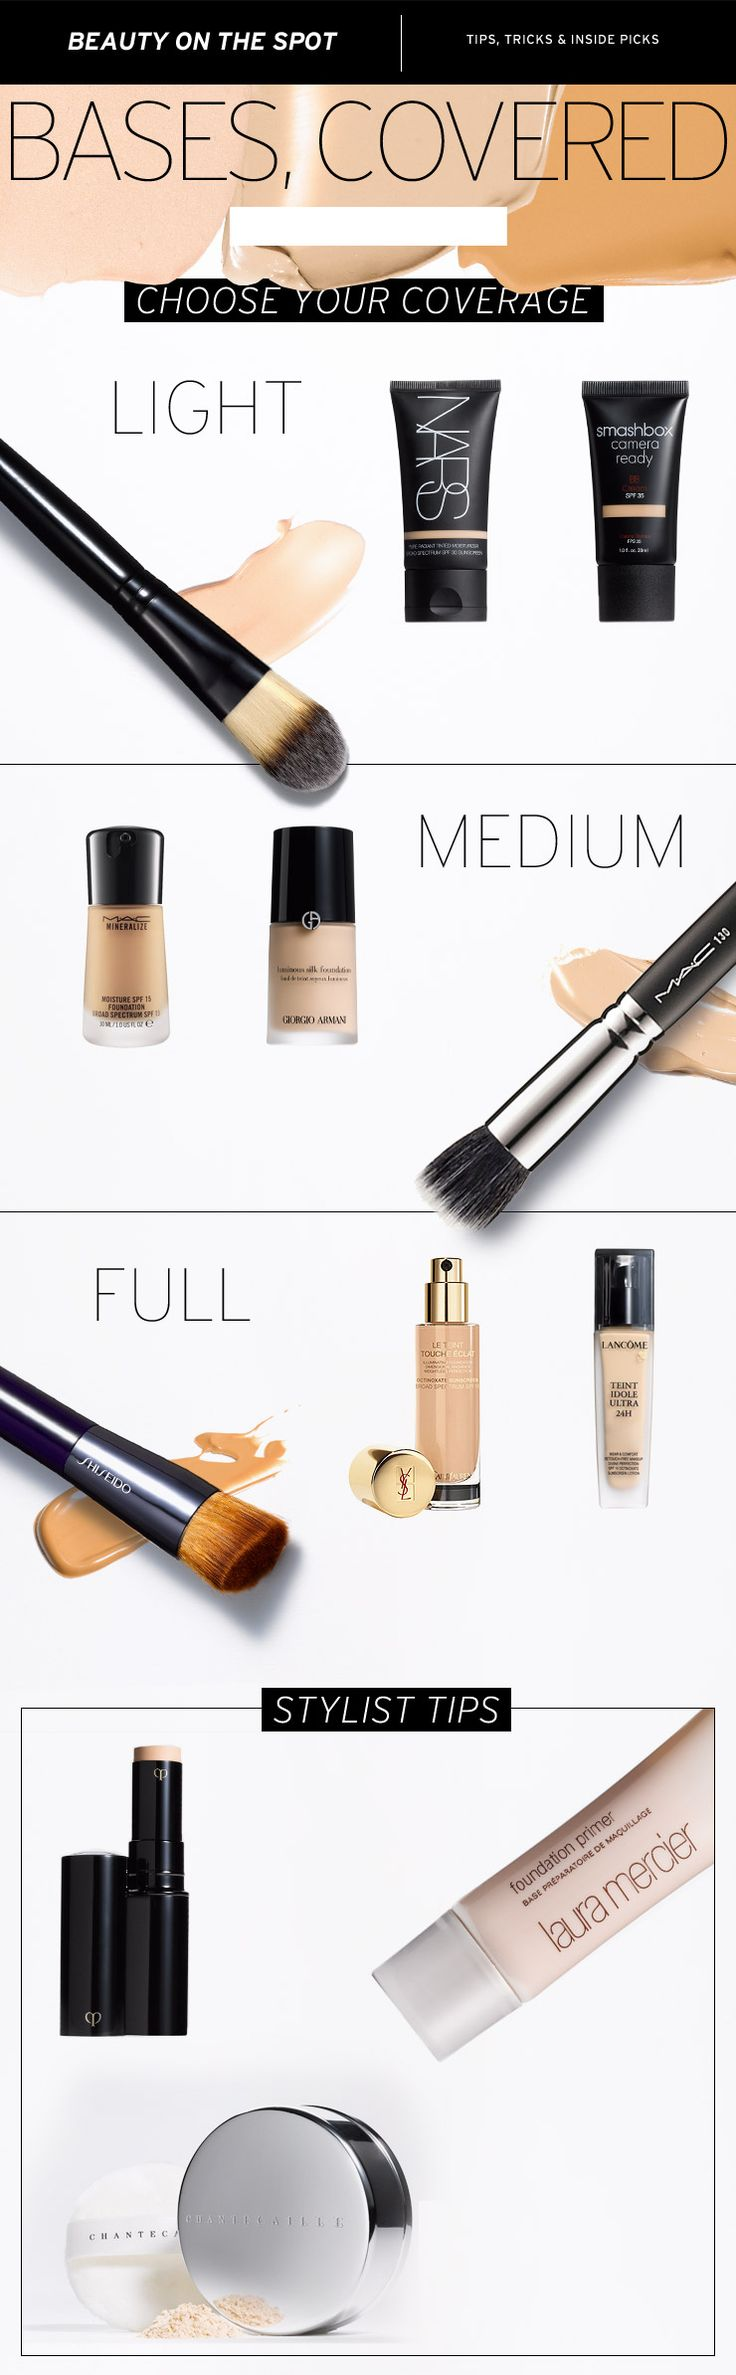 How to pick the right foundation: Light, medium and full coverage tips.